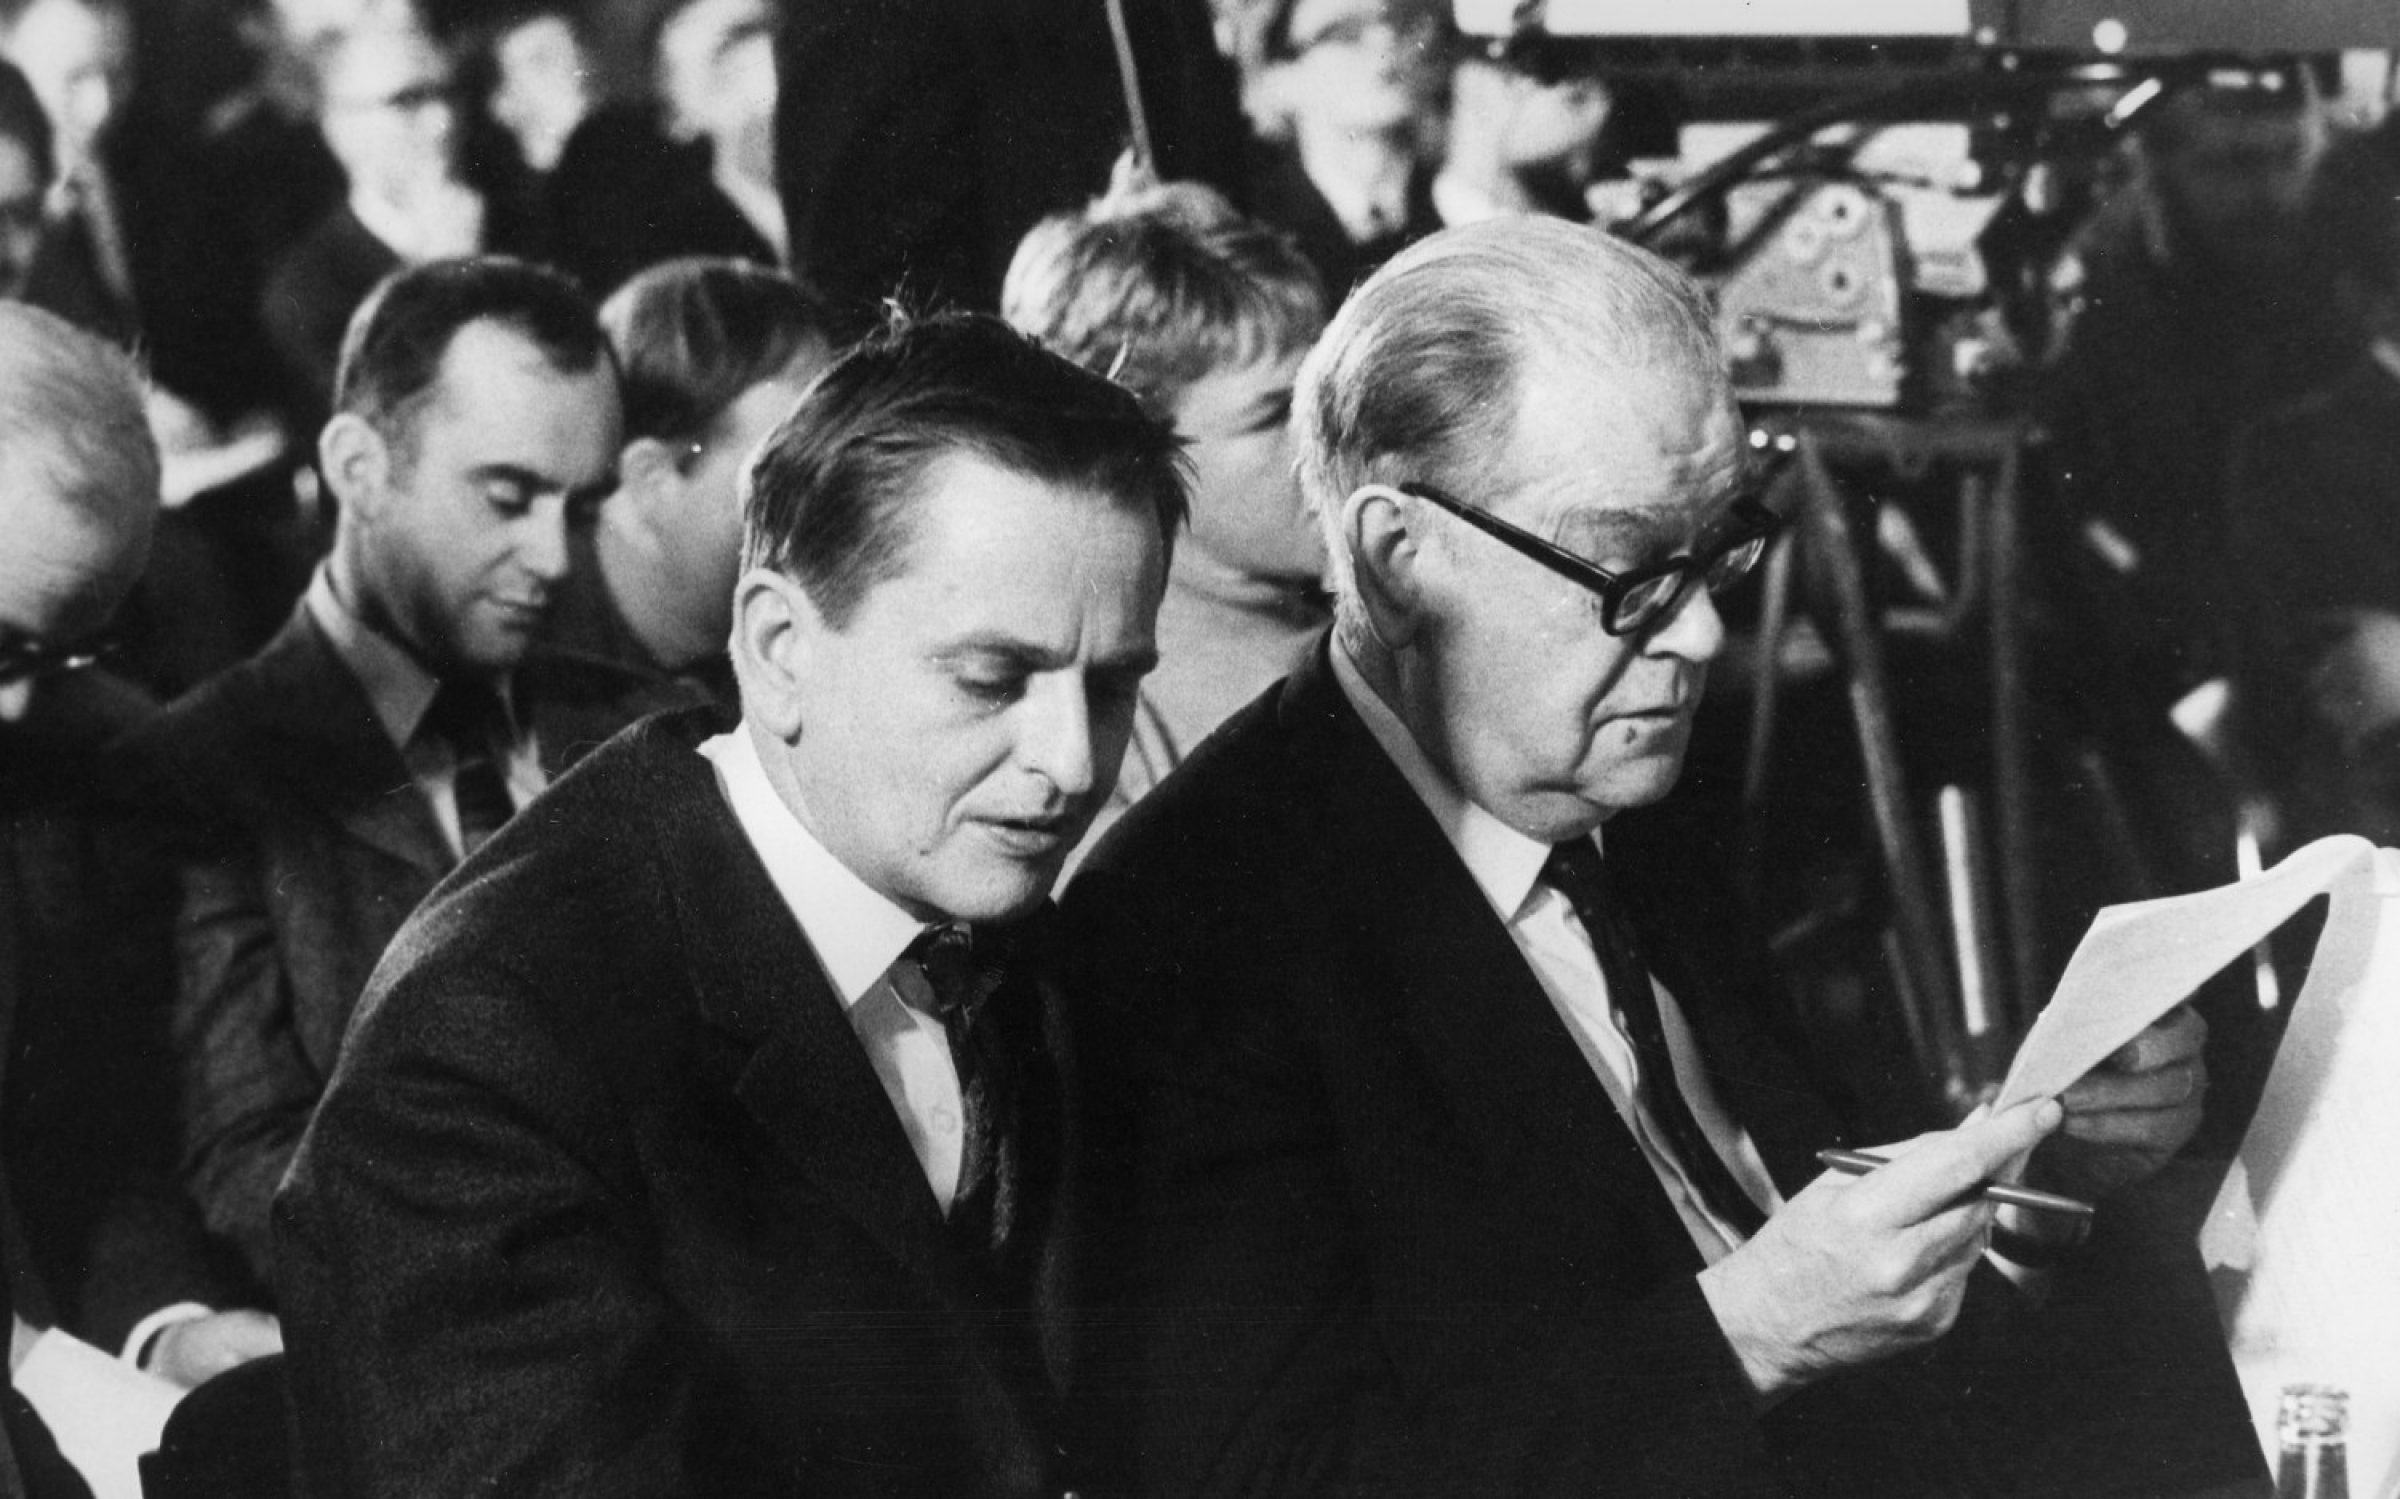 Olof Palme (l) and Tage Erlander (r), two Prime Ministers of the social democratic era in Sweden. Credit: Getty Images.